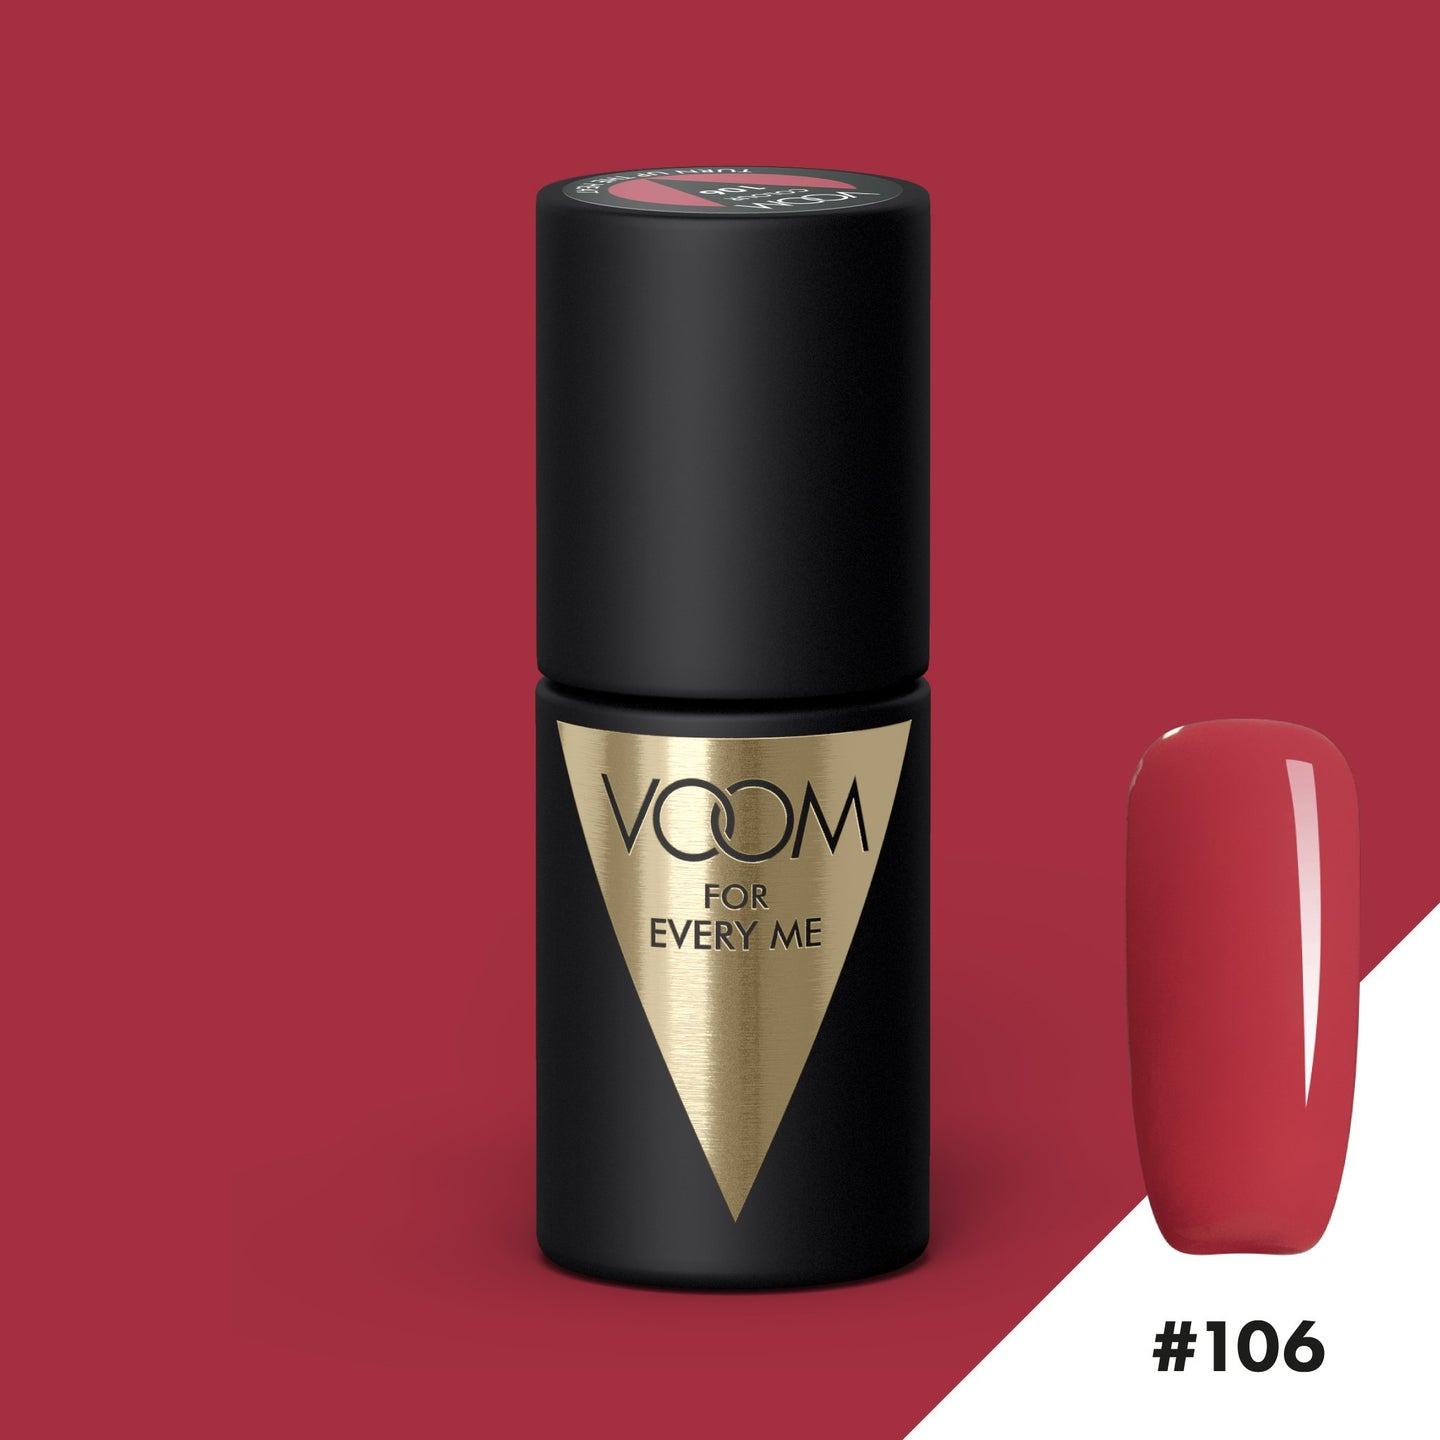 VOOM Soak Off Gel Polish #106 - Turn Up The Heat (.17 fl. oz. | 5 ml)